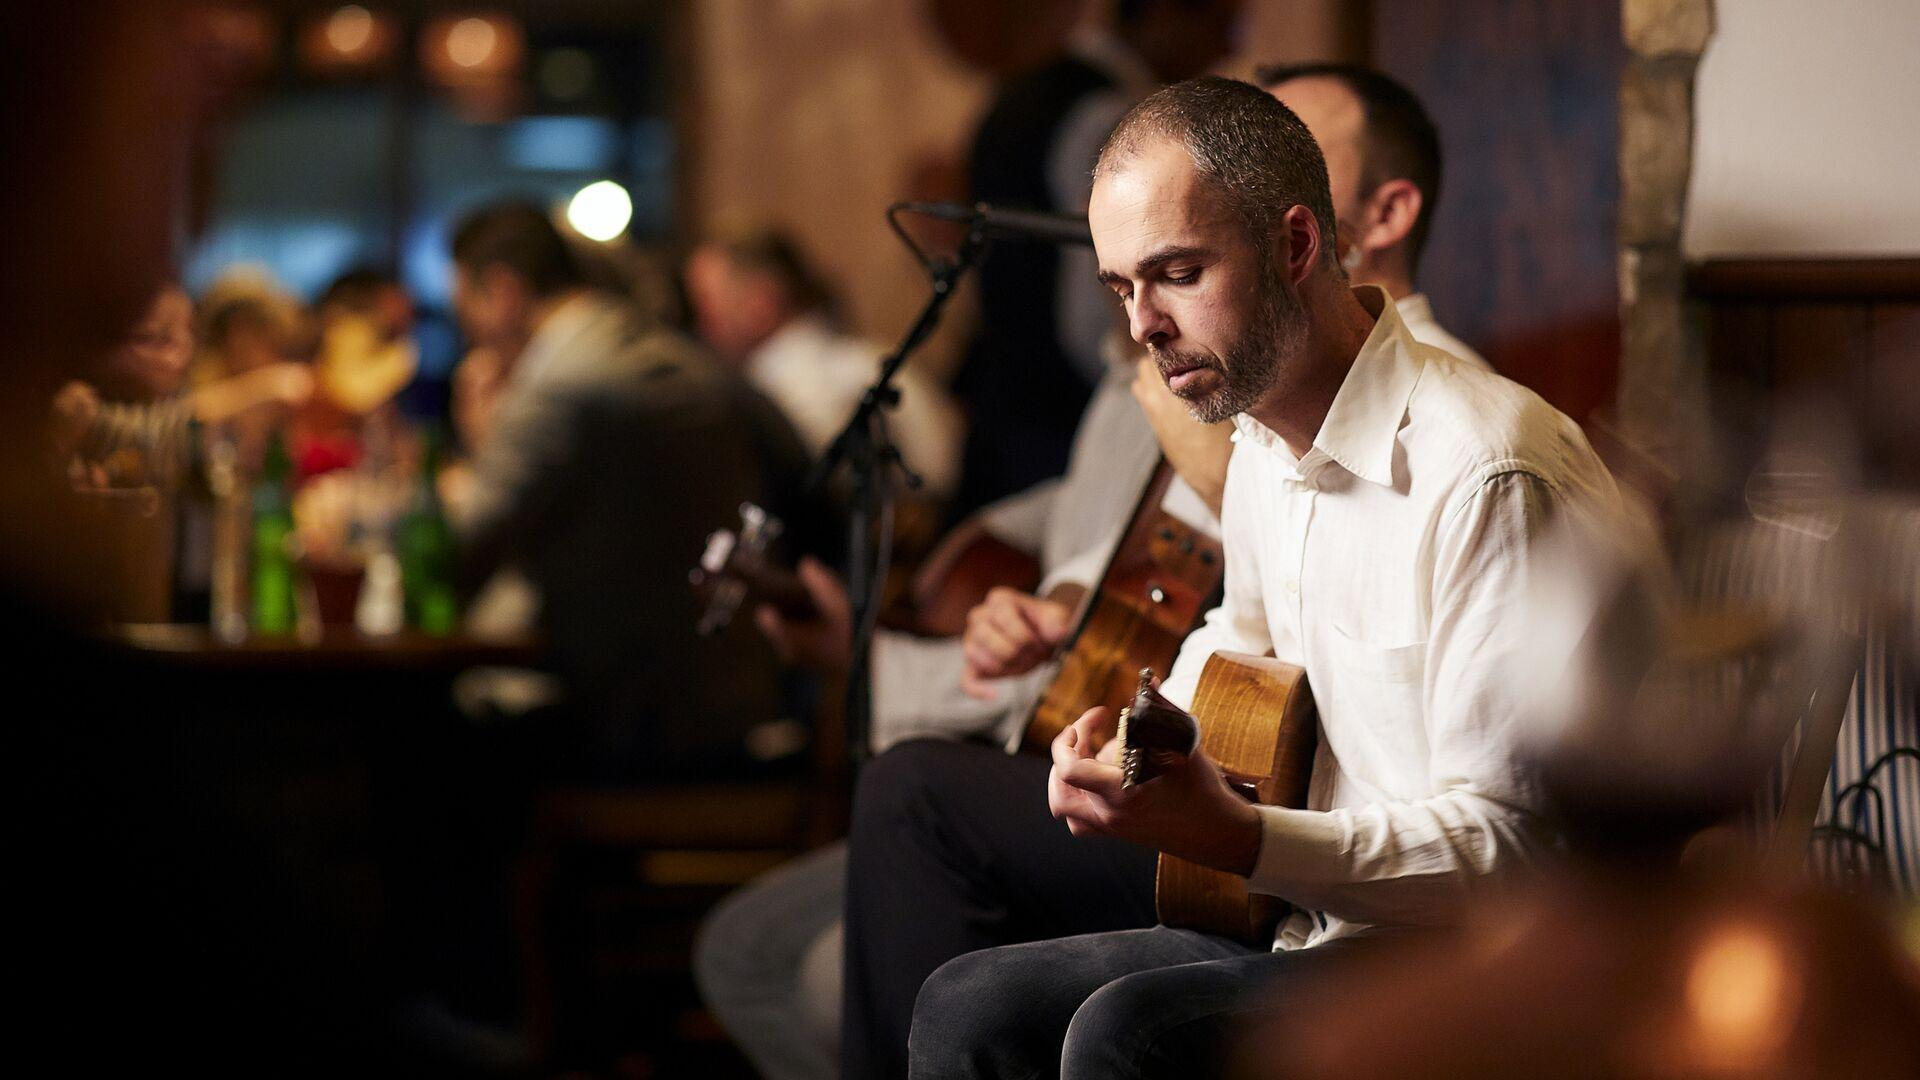 No visit to Portugal is complete without experience this traditional and emotional style of music.